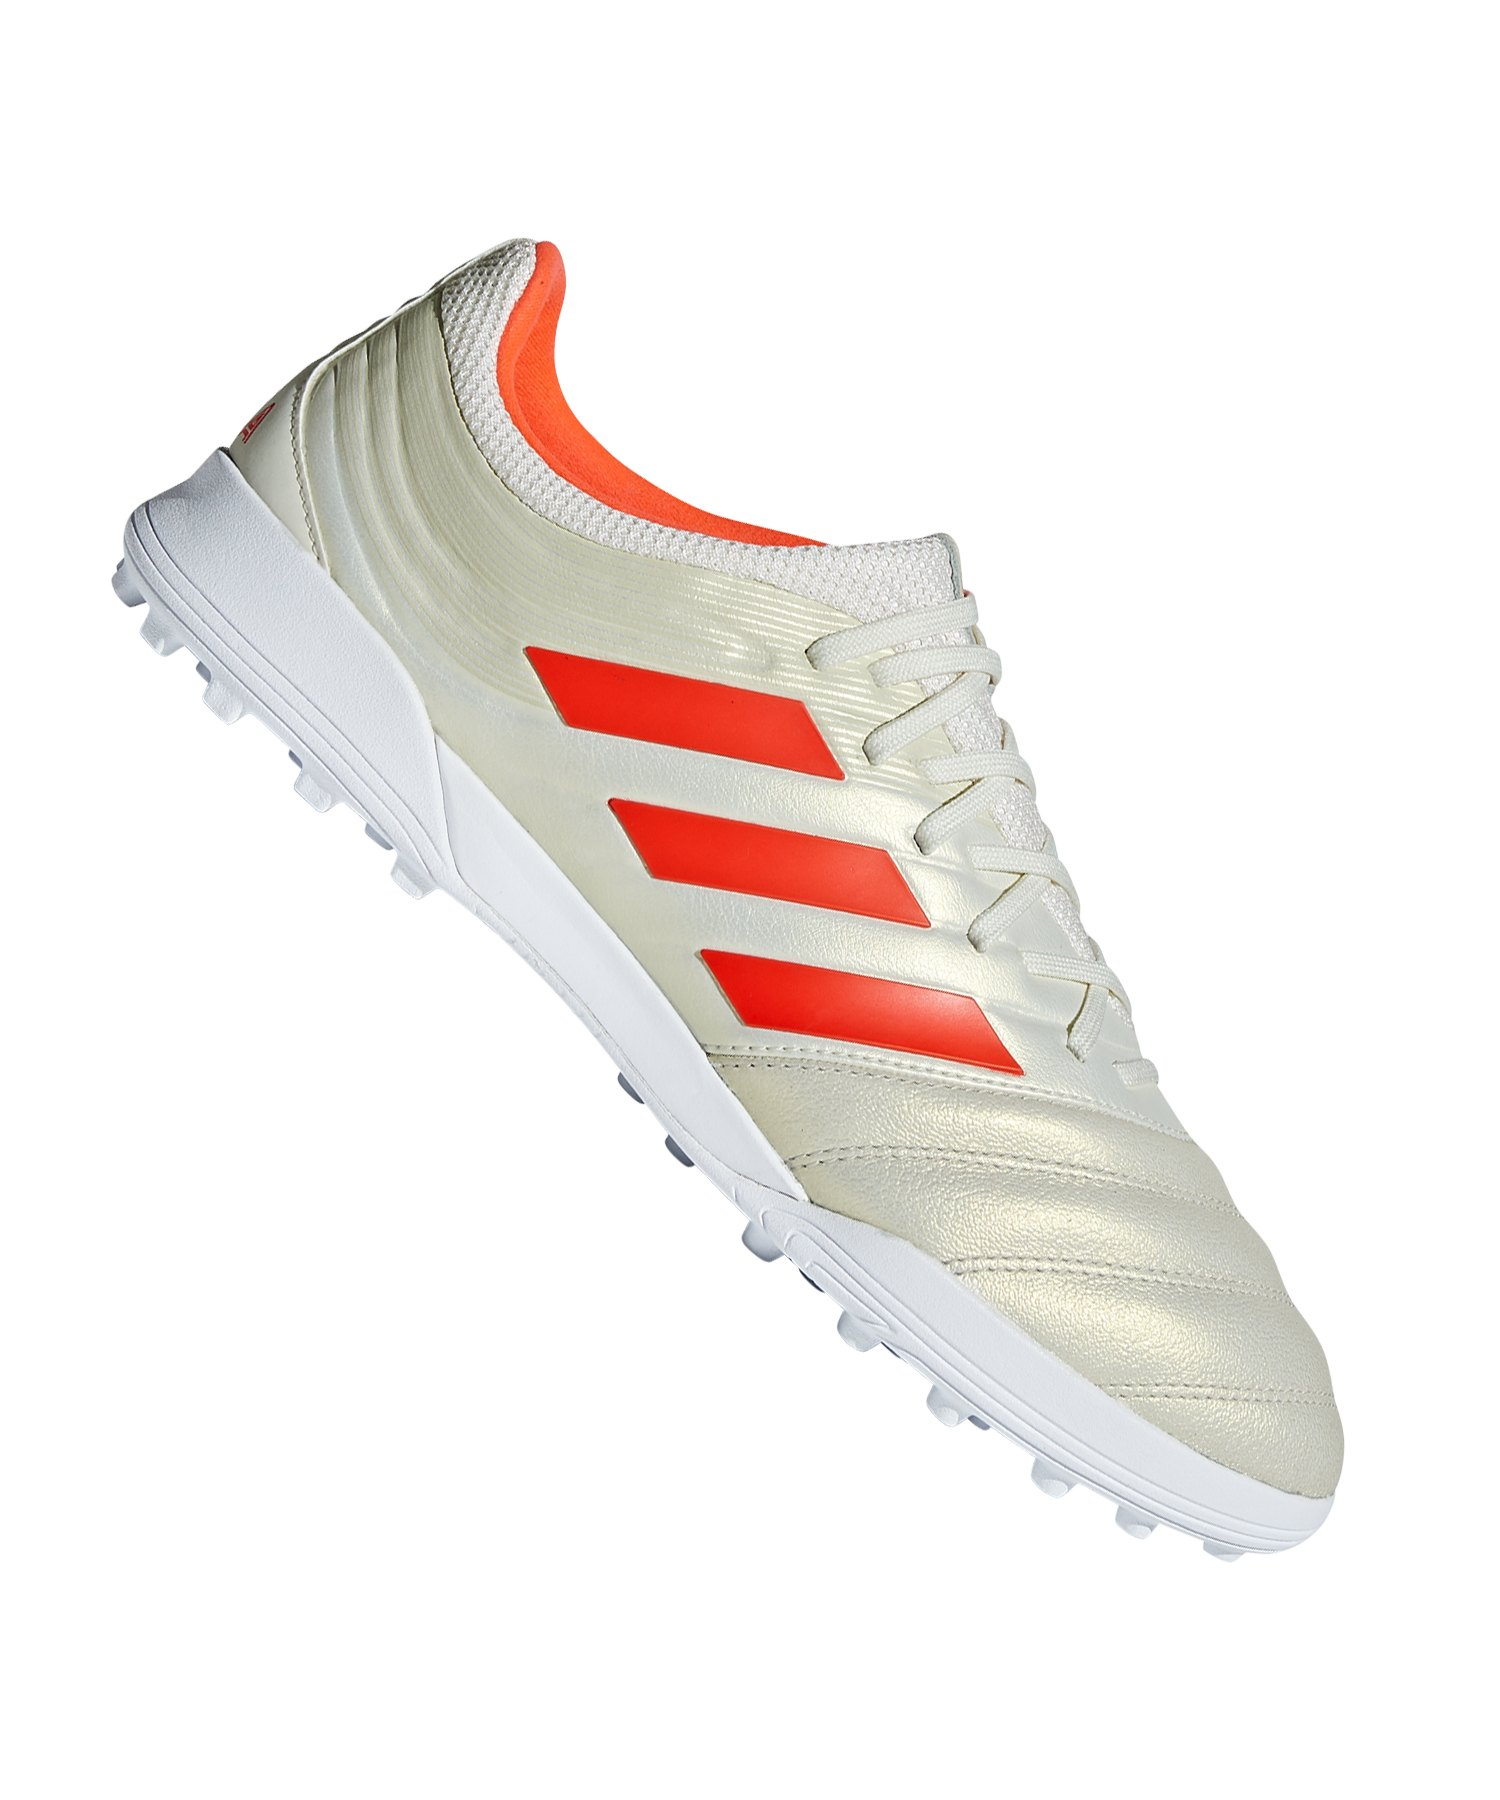 adidas COPA 19.3 TF Weiss Rot